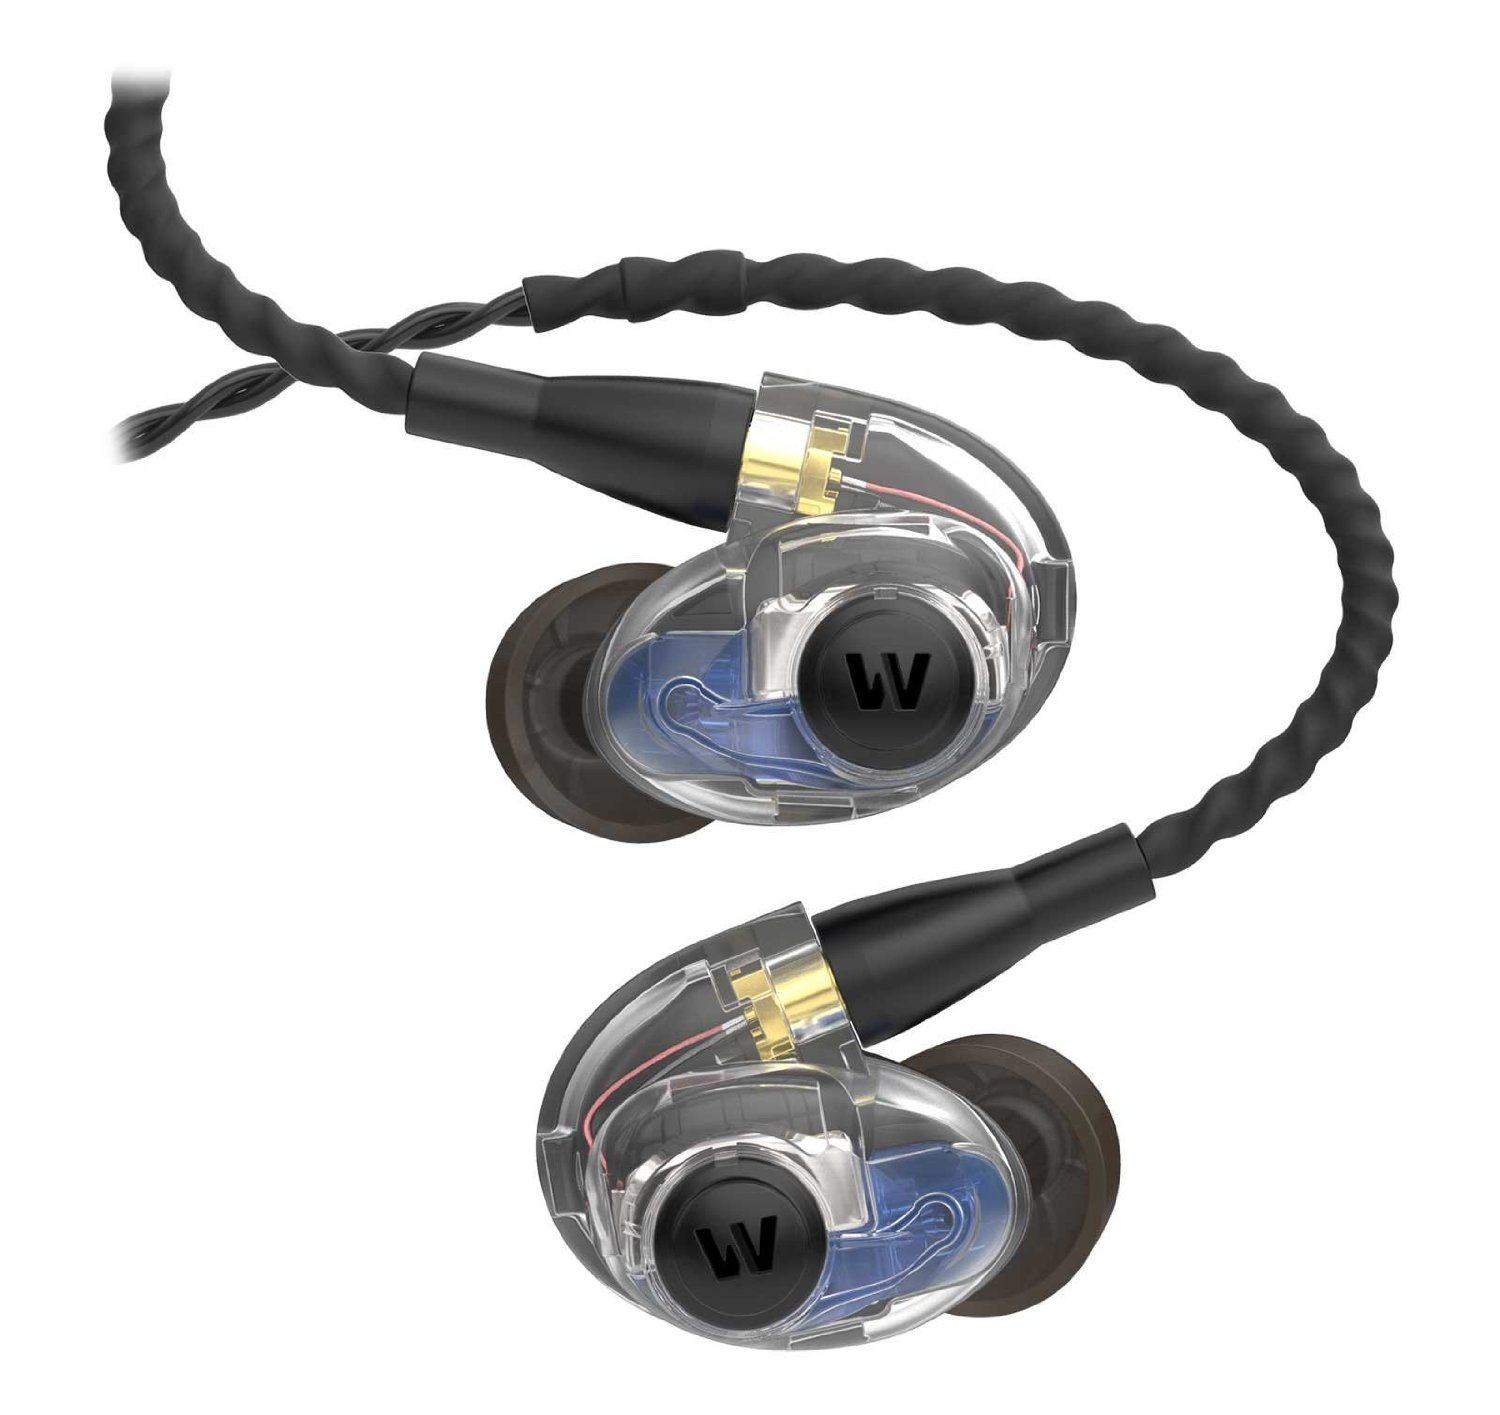 Westone Dual Driver Universal Fit In Ear Monitor AM Pro 20